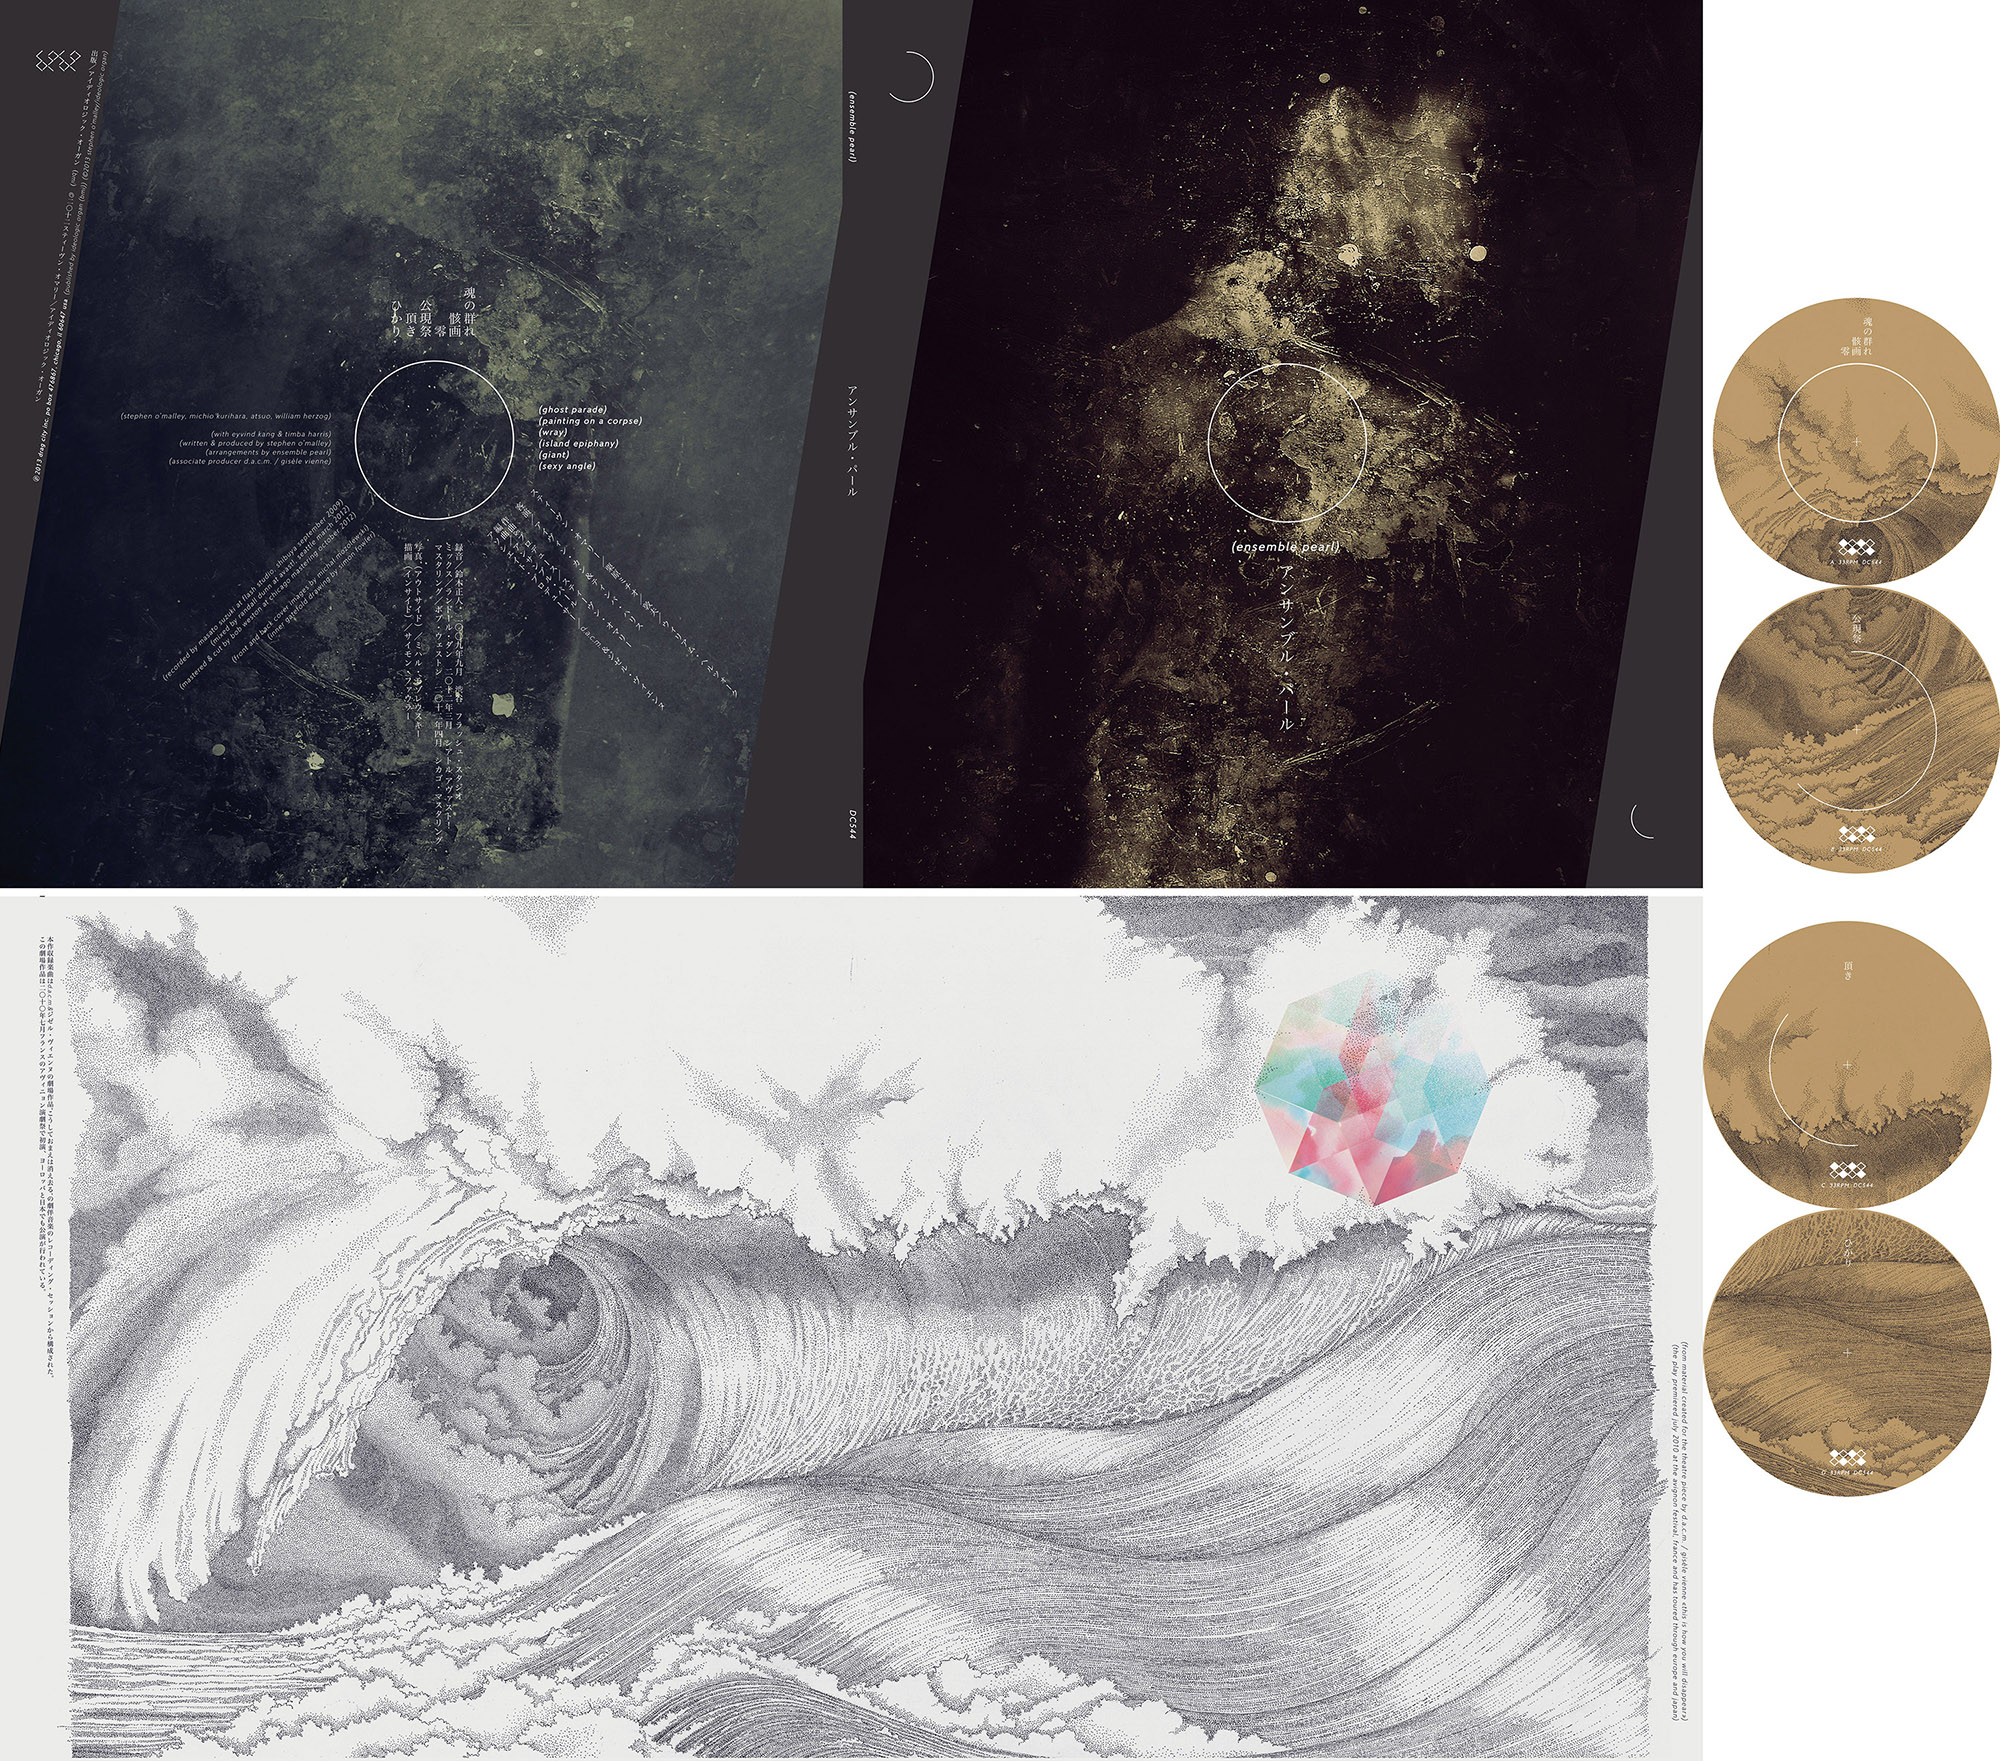 ENSEMBLE PEARL 2LP & CD to be released March 2013